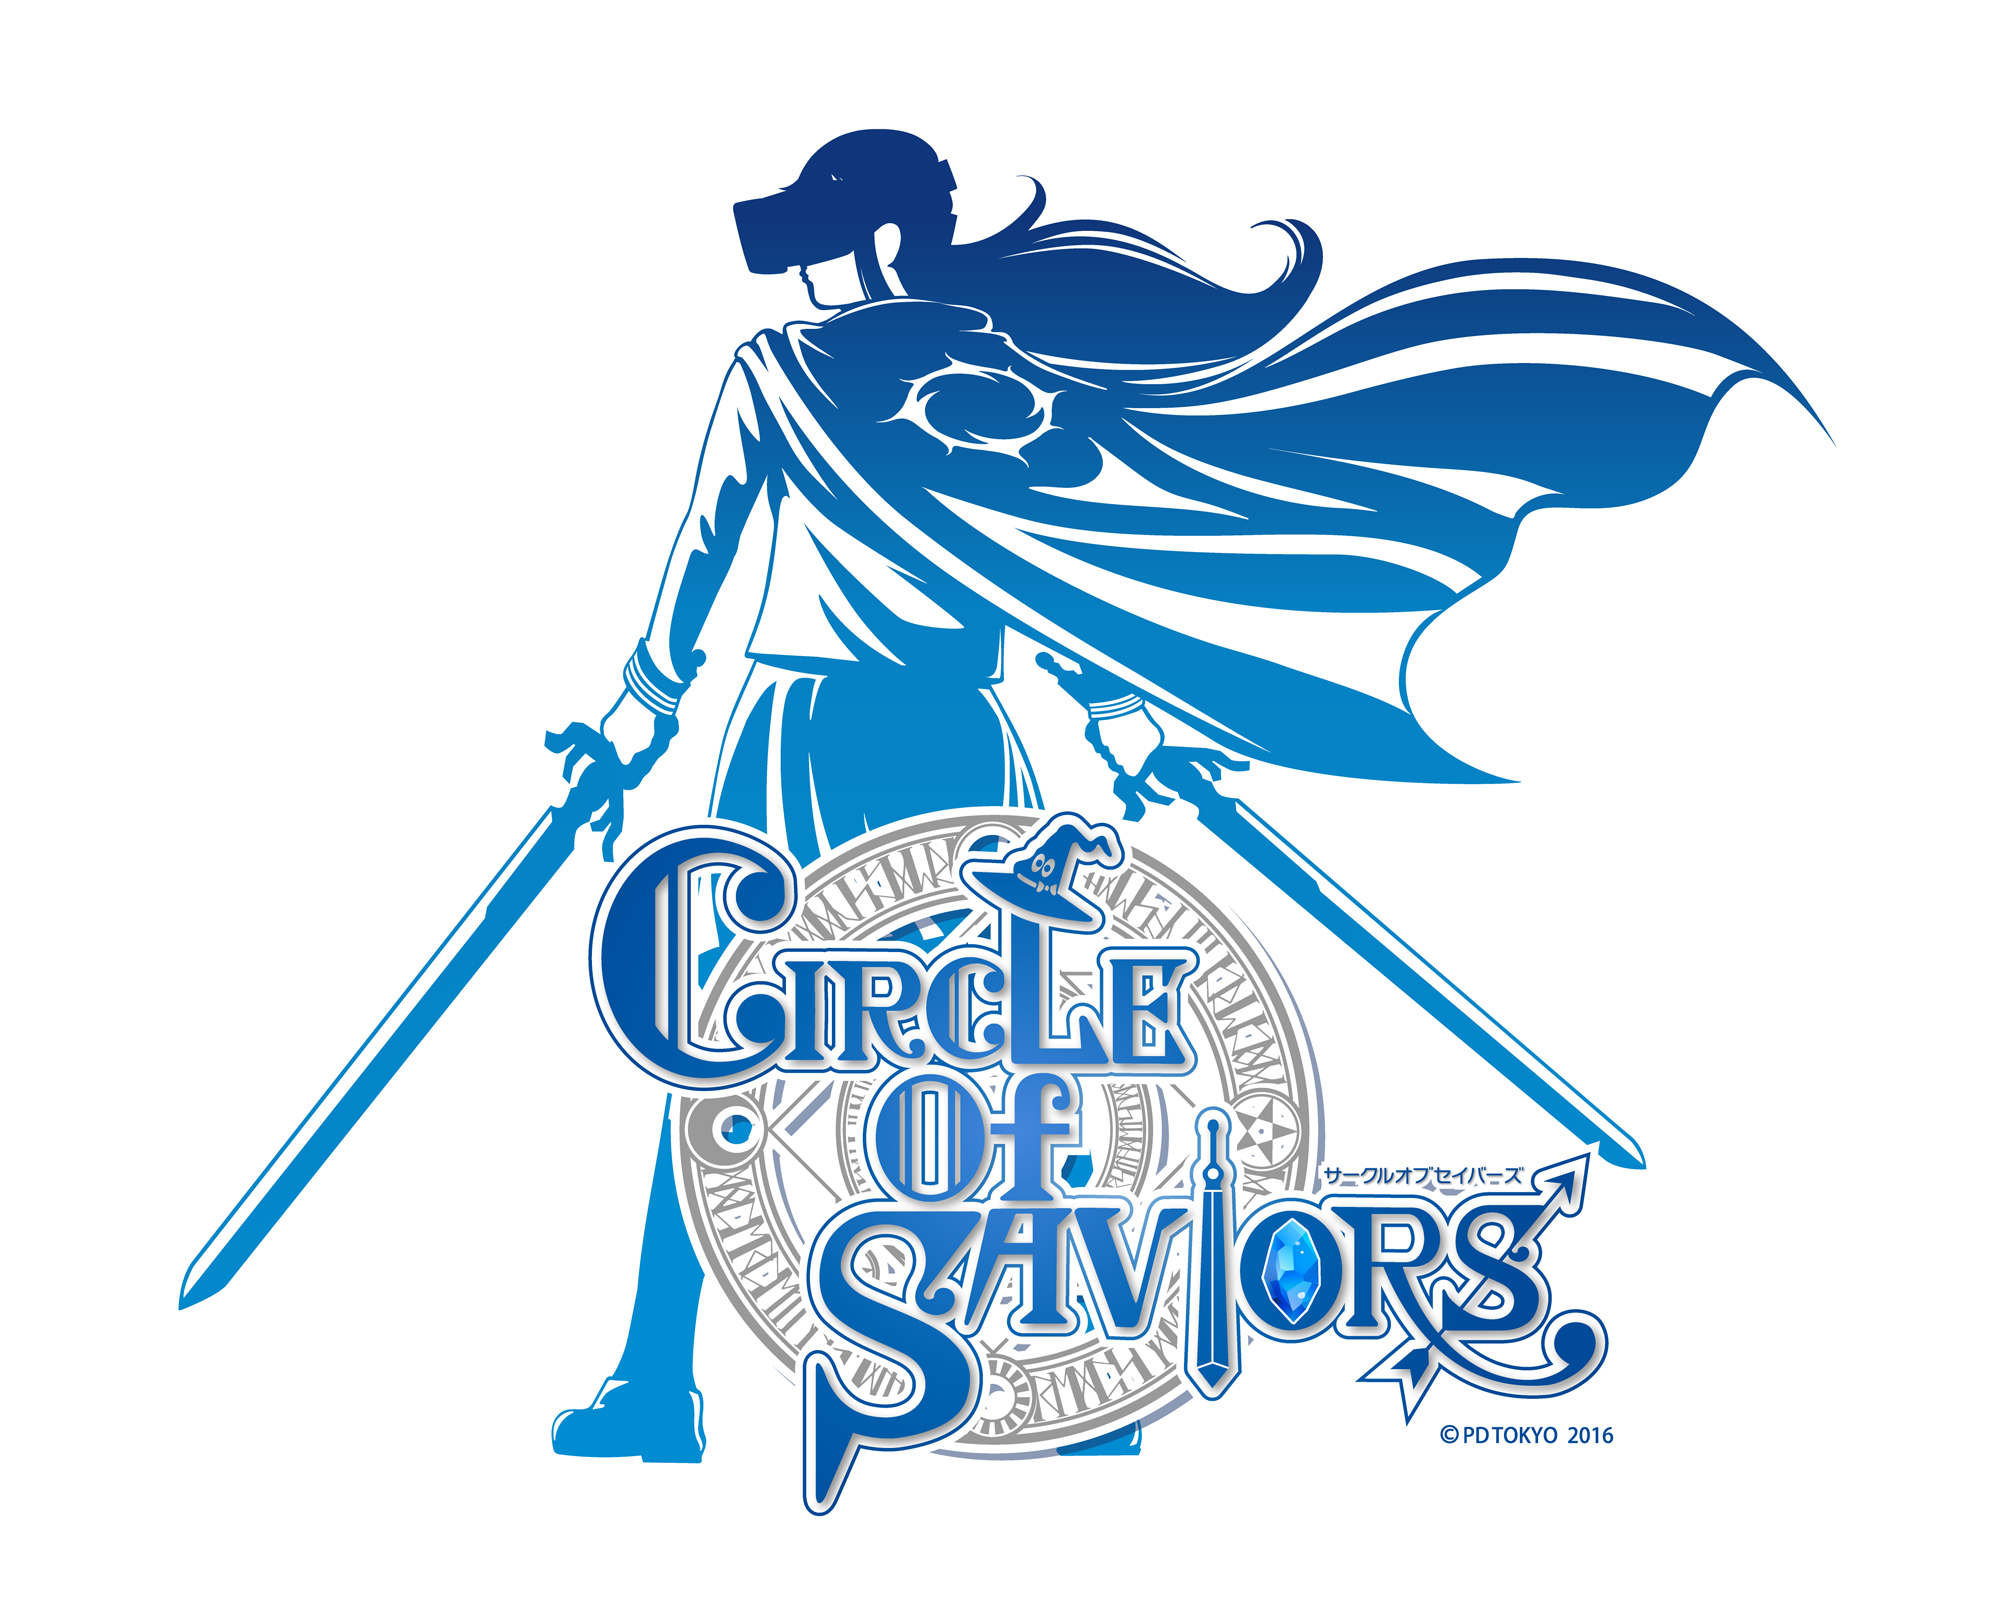 『CIRCLE of SAVIORS』